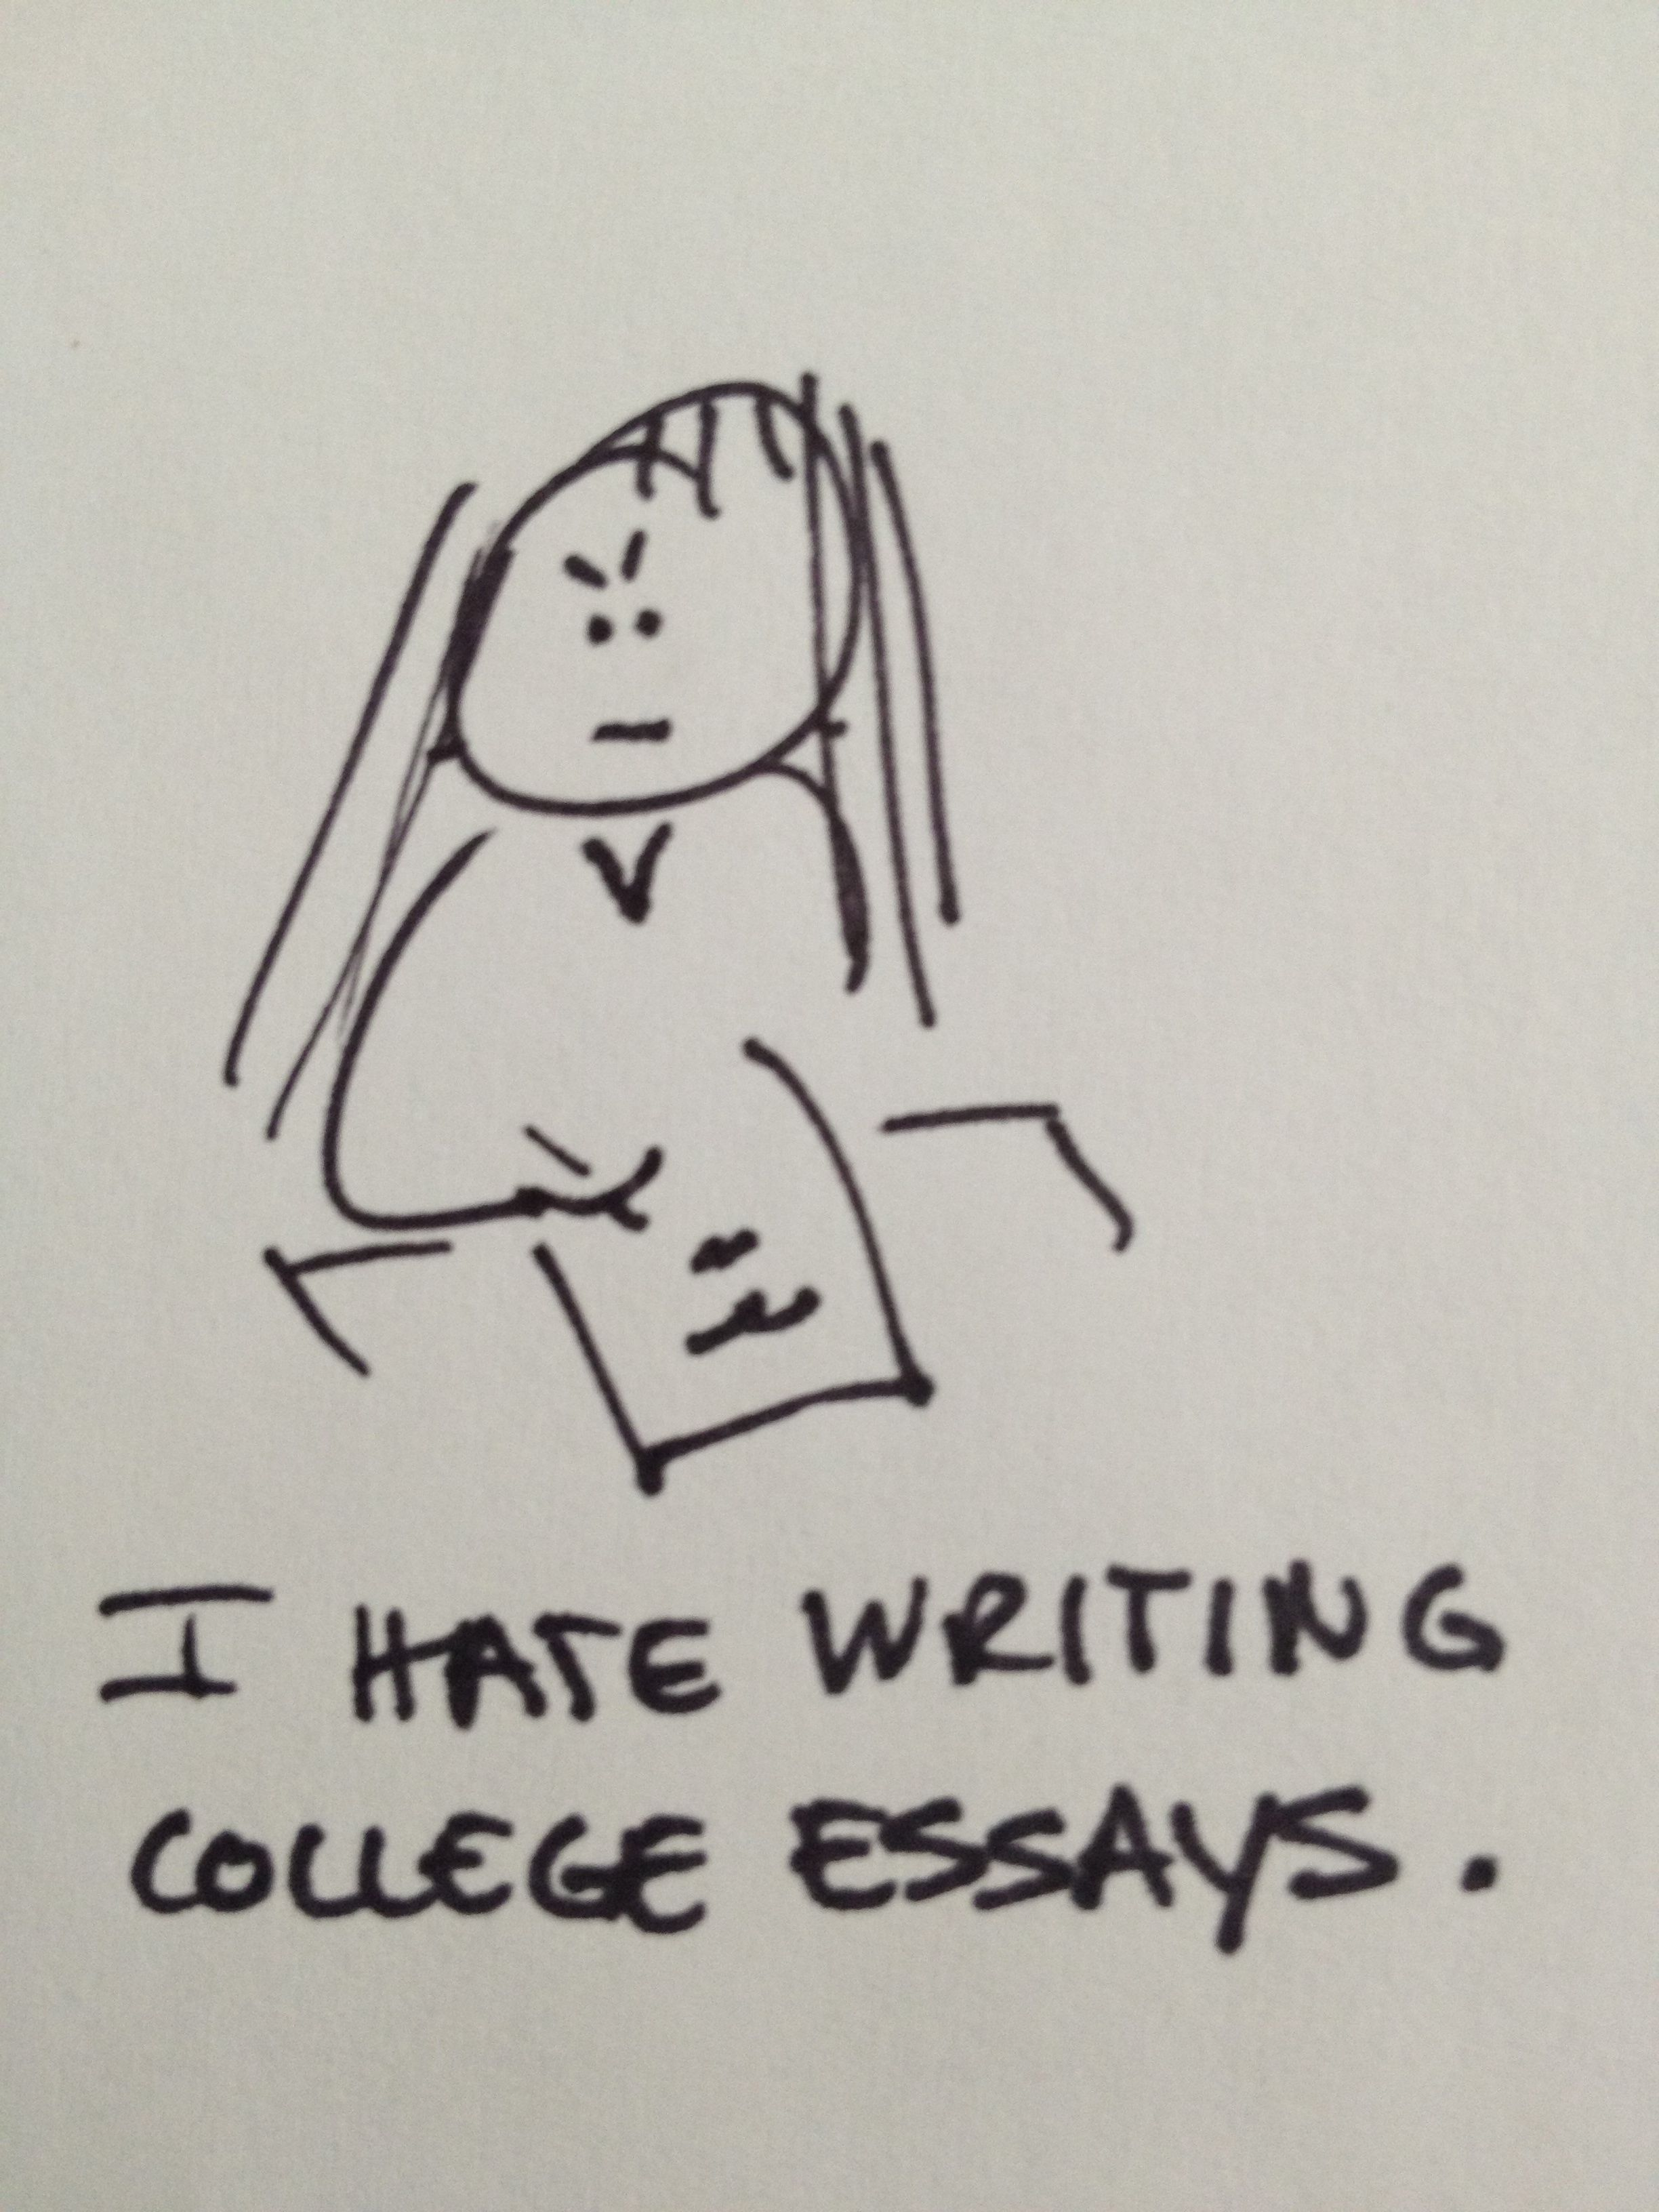 How To Write College Admissions Essays A Letter To High School